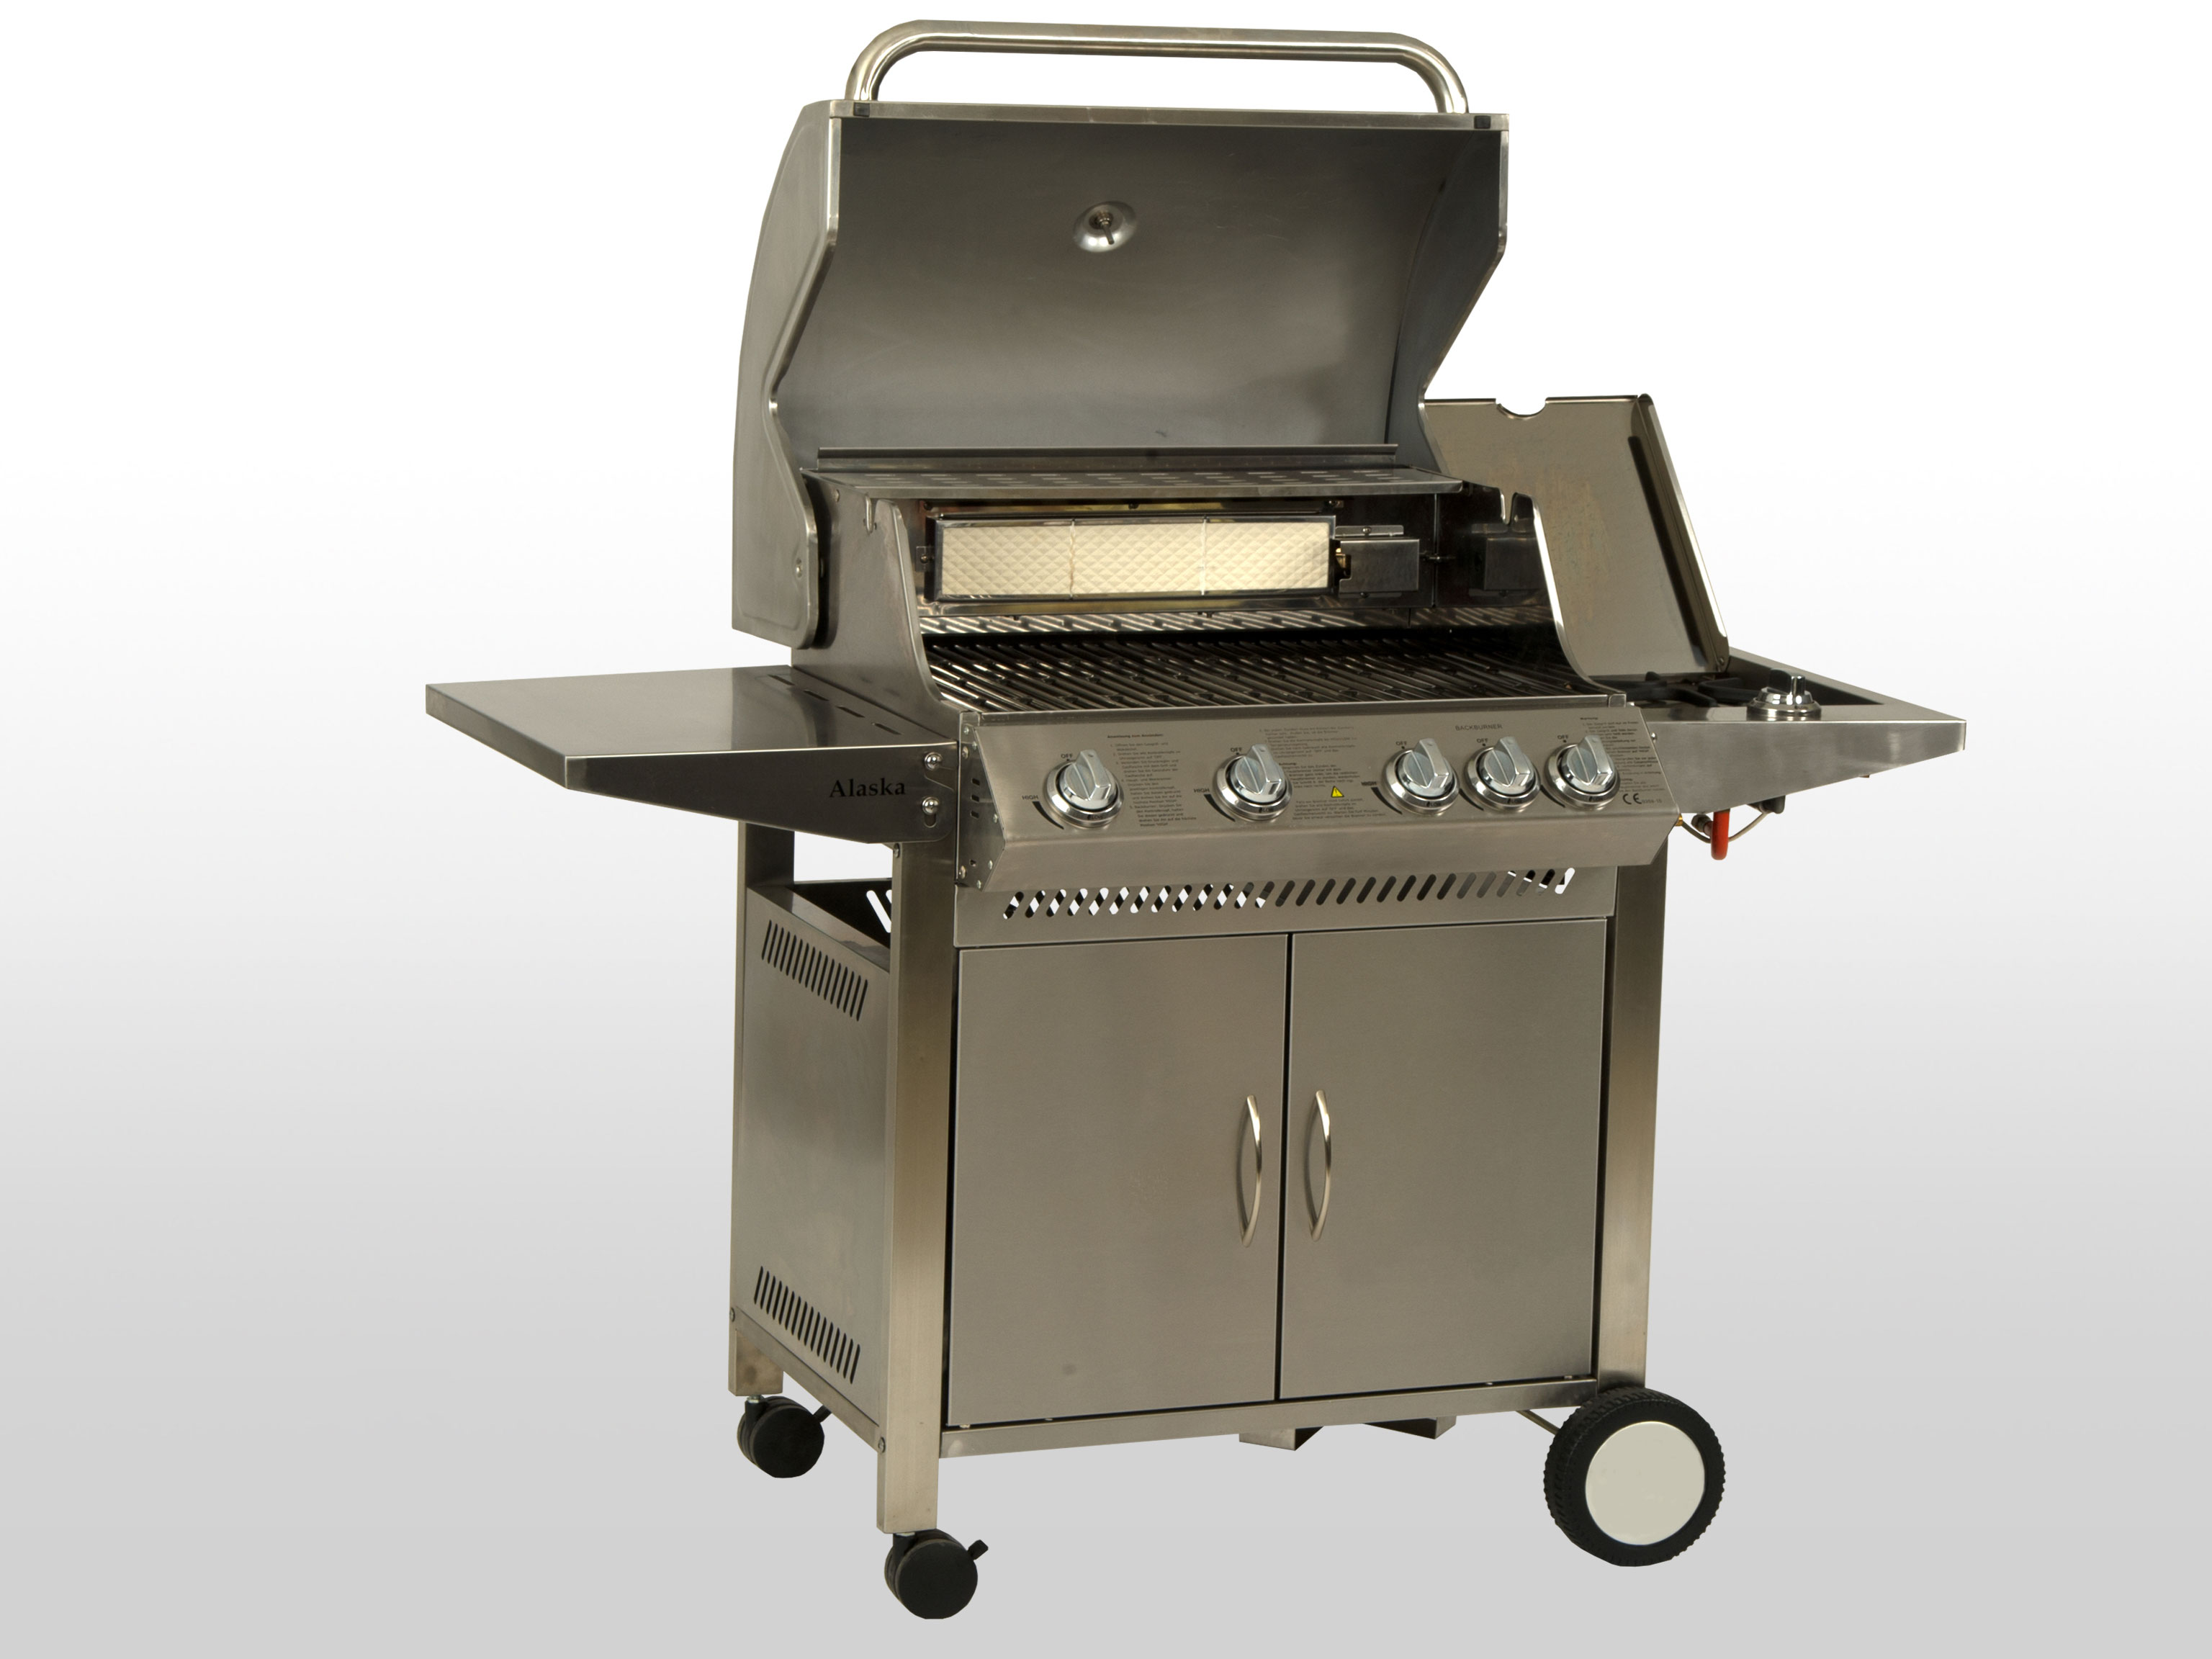 Enders Gasgrill Forum : Nosiger enders kocher und stoves pelam forum